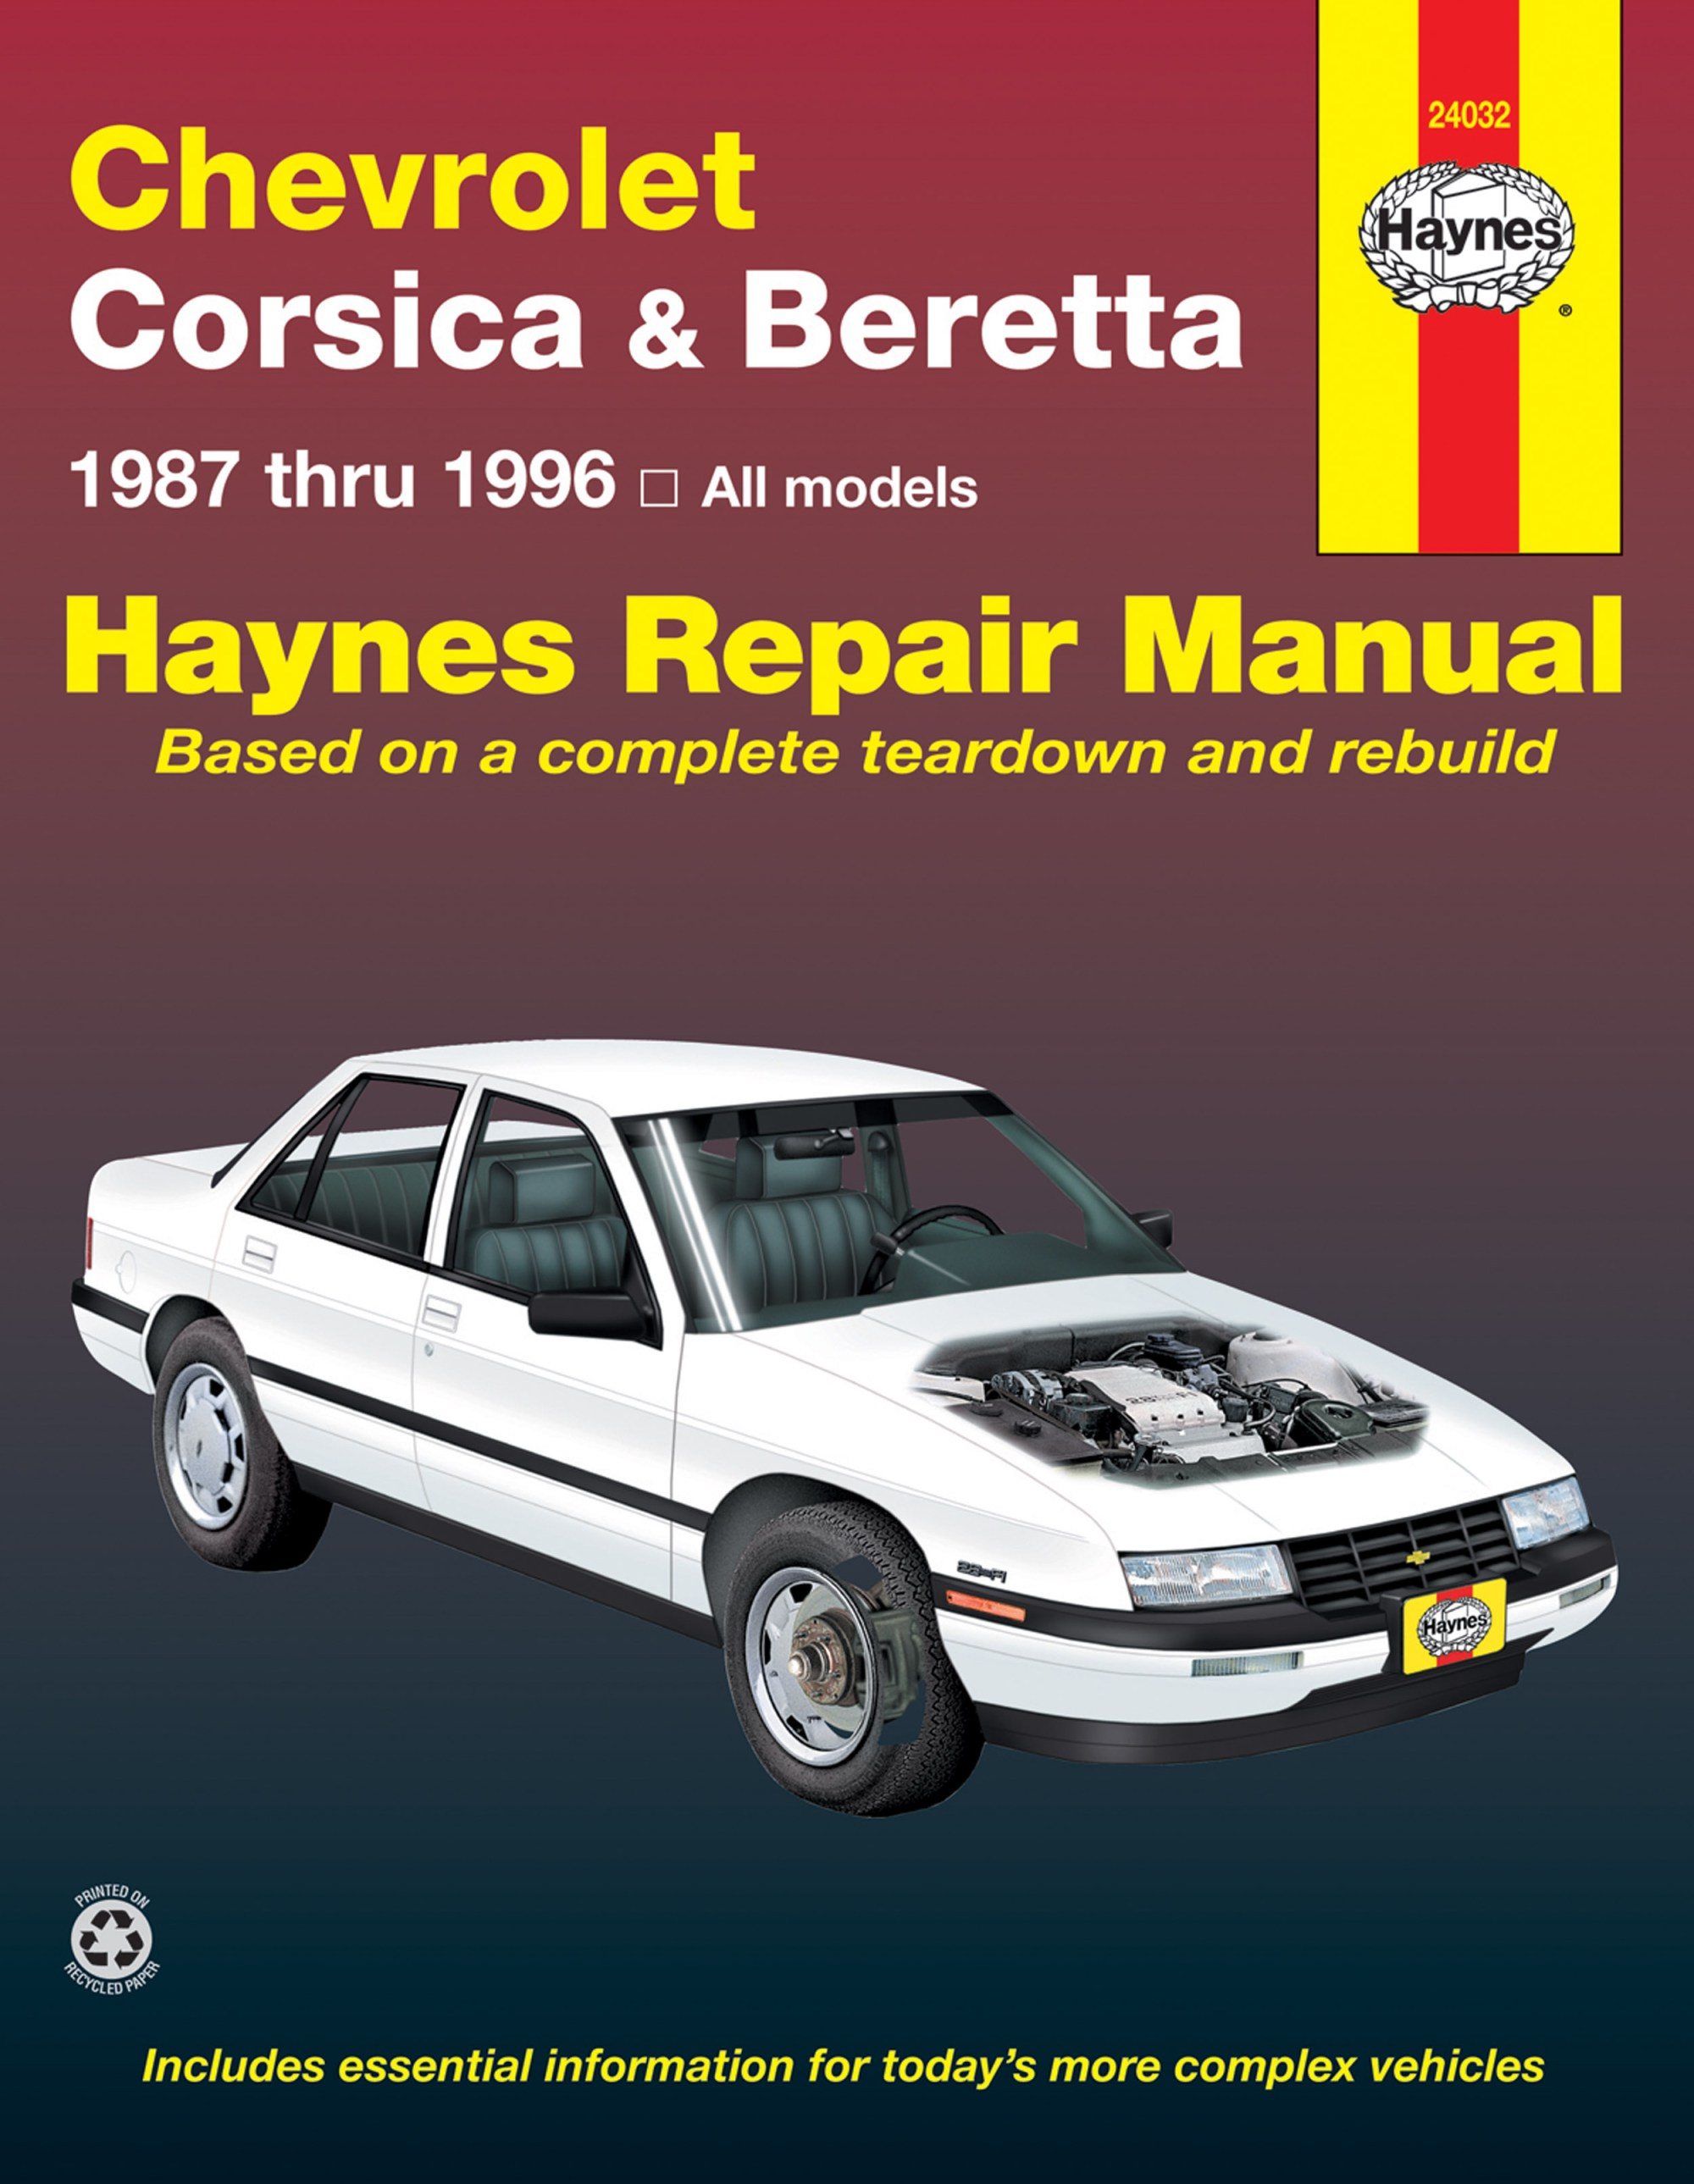 hight resolution of enlarge chevrolet corsica beretta